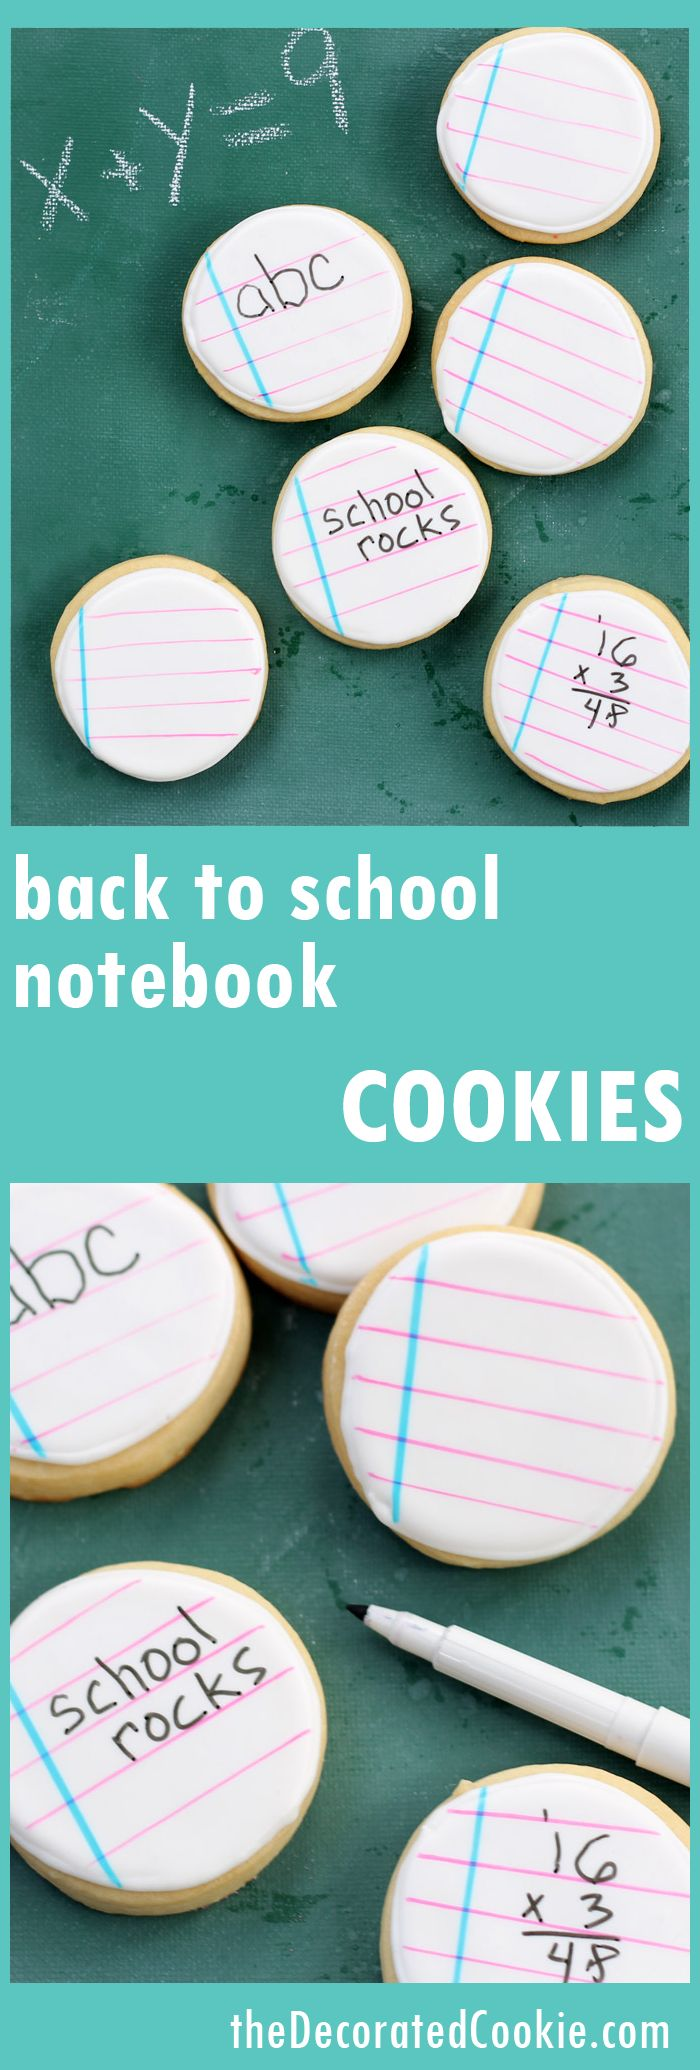 Cookie decorating party ideas - Back To School Cookies Notebook Cookies You Can Write On